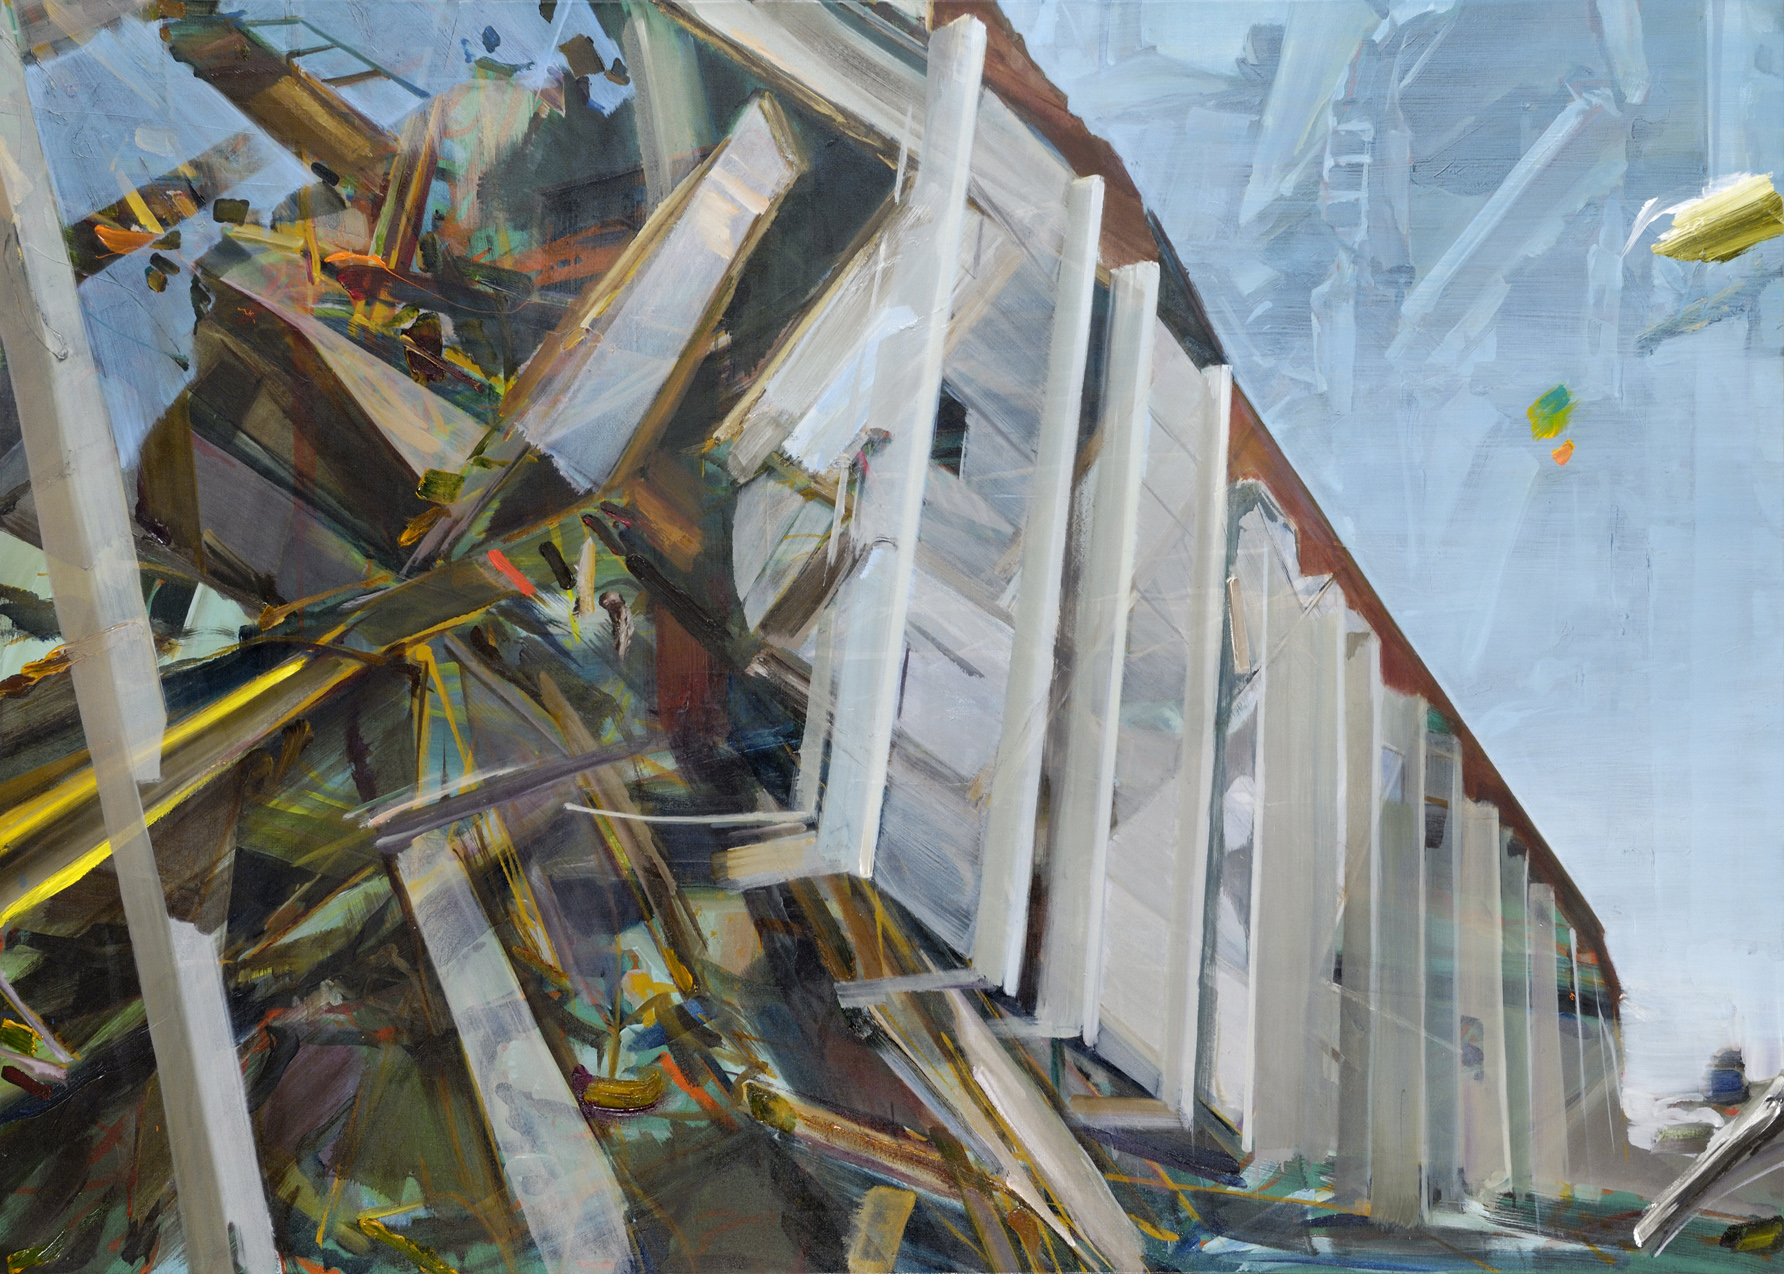 Humpty Dumpty , 2011, oil on canvas, 135.5 x 200cm. Private collection , France